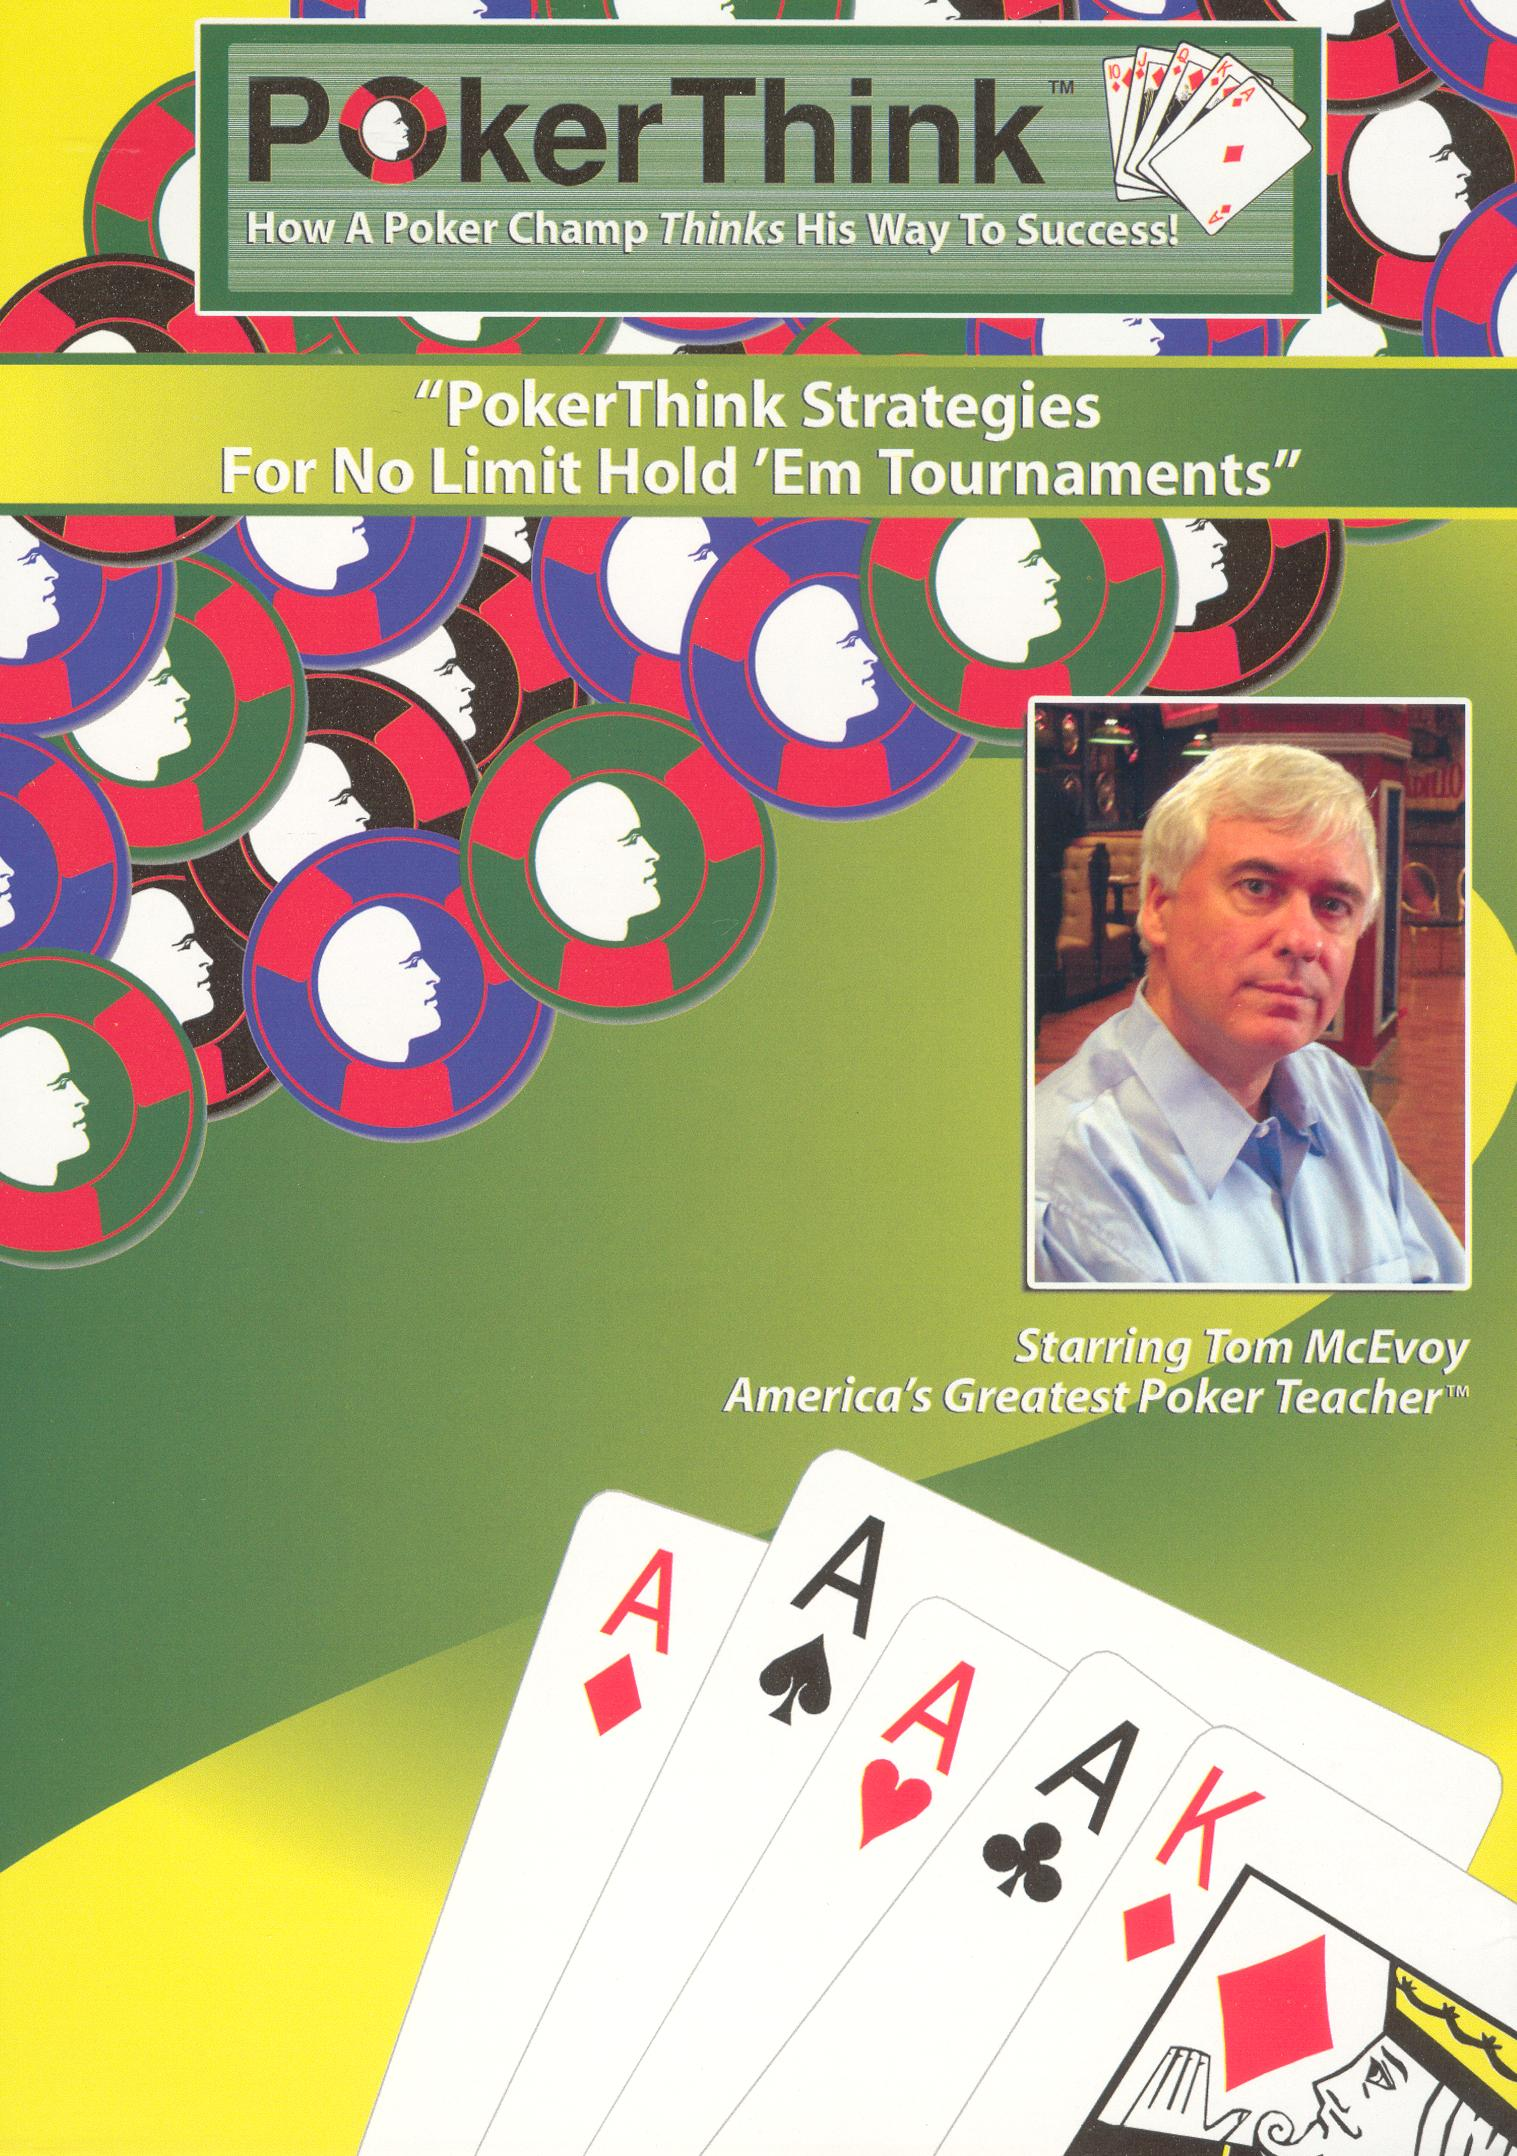 PokerThink: How a Poker Champ Thinks His Way to Success